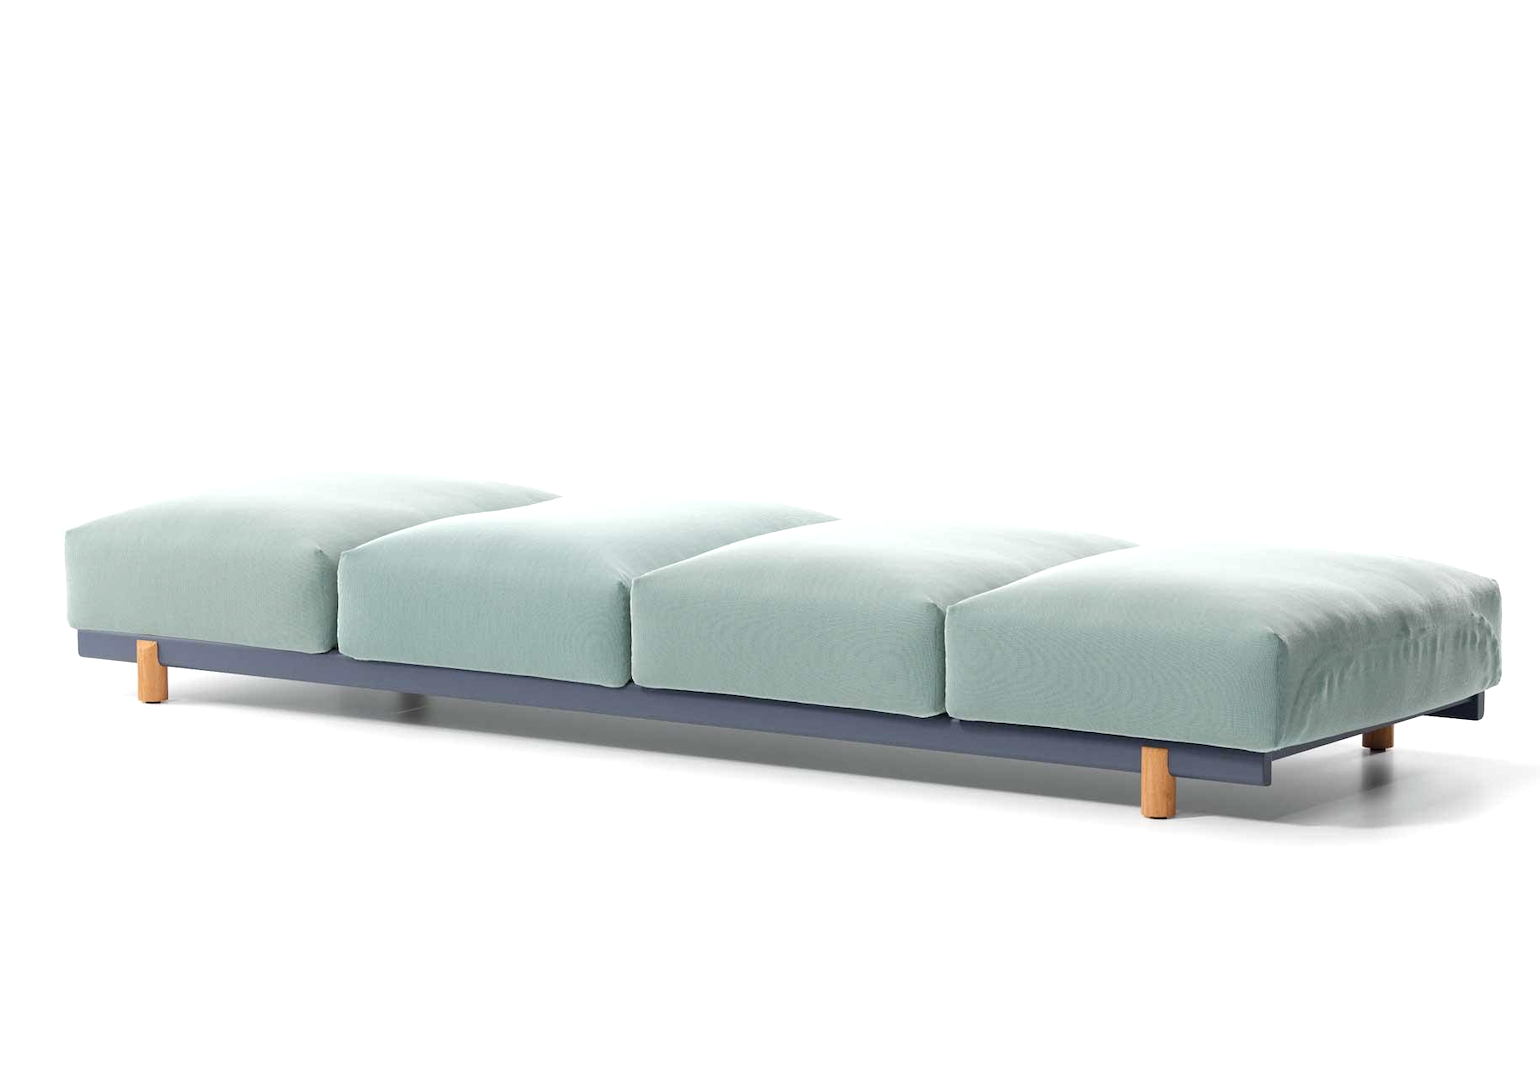 Product Image Molo 4 Seat Bench